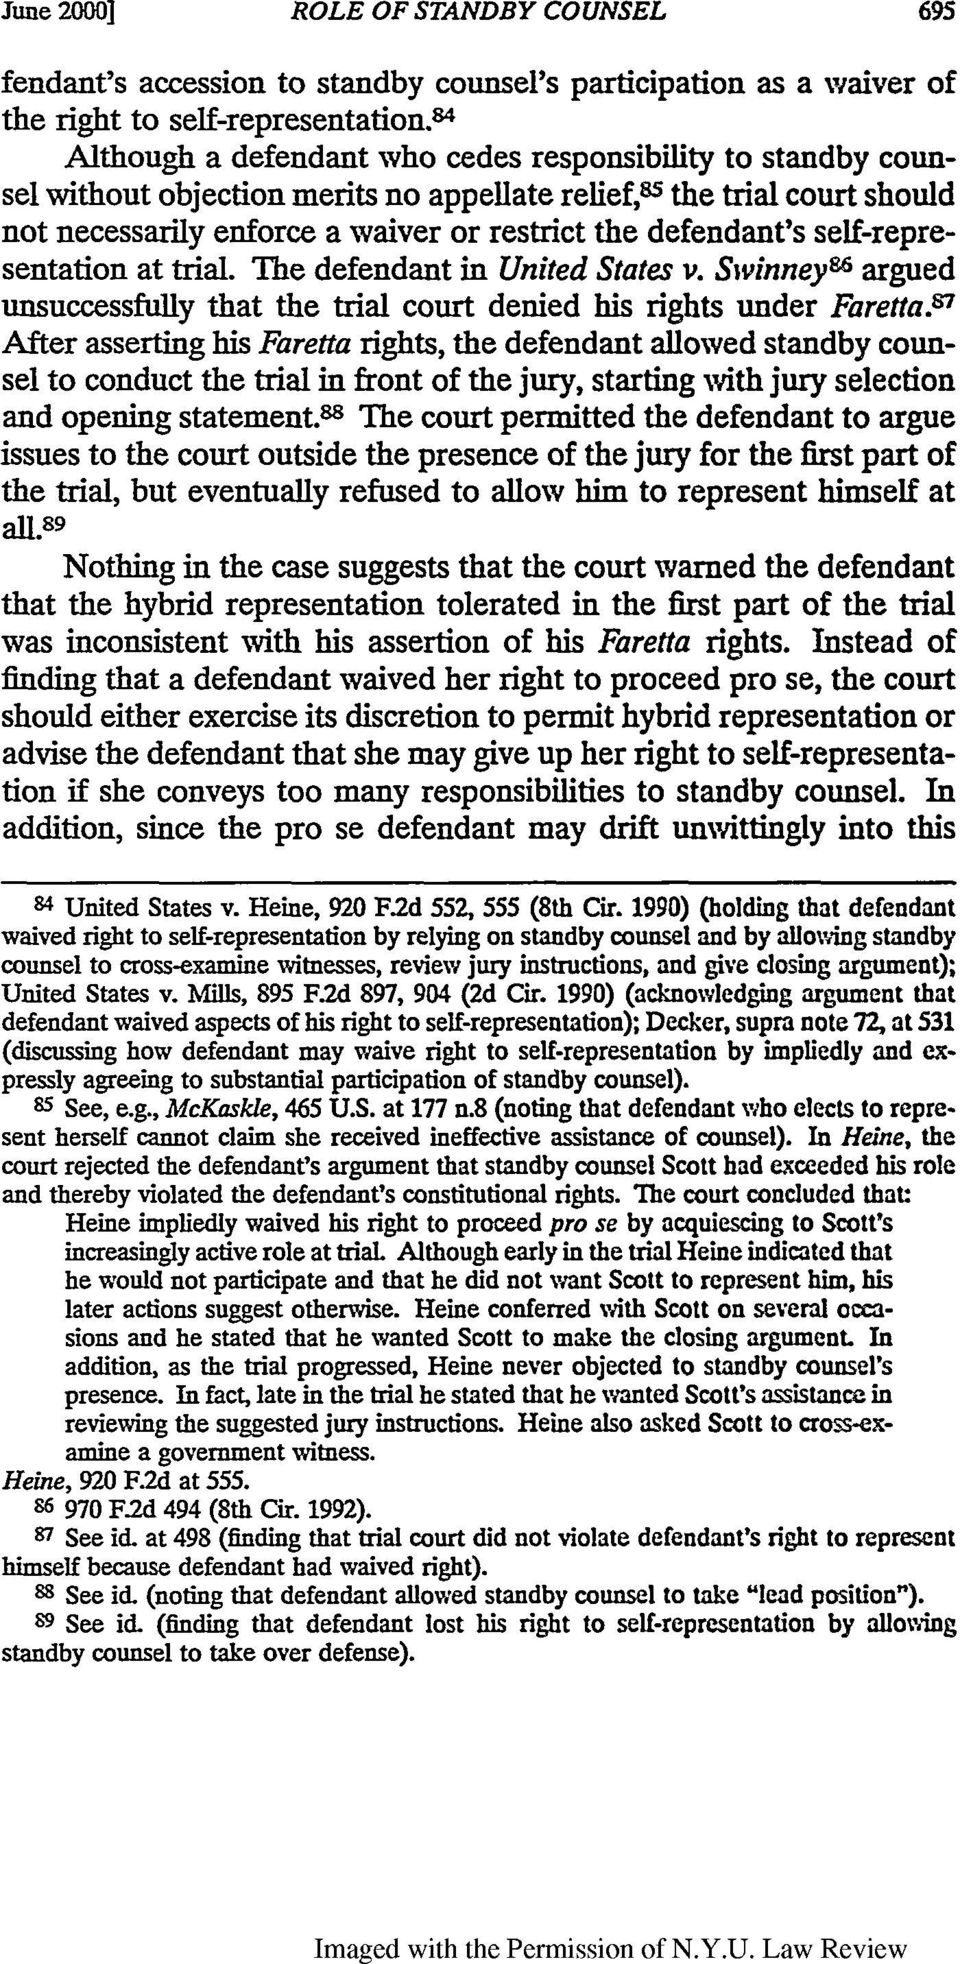 defendant's self-representation at trial. The defendant in United States v. Swinney86 argued unsuccessfully that the trial court denied his rights under Faretta.